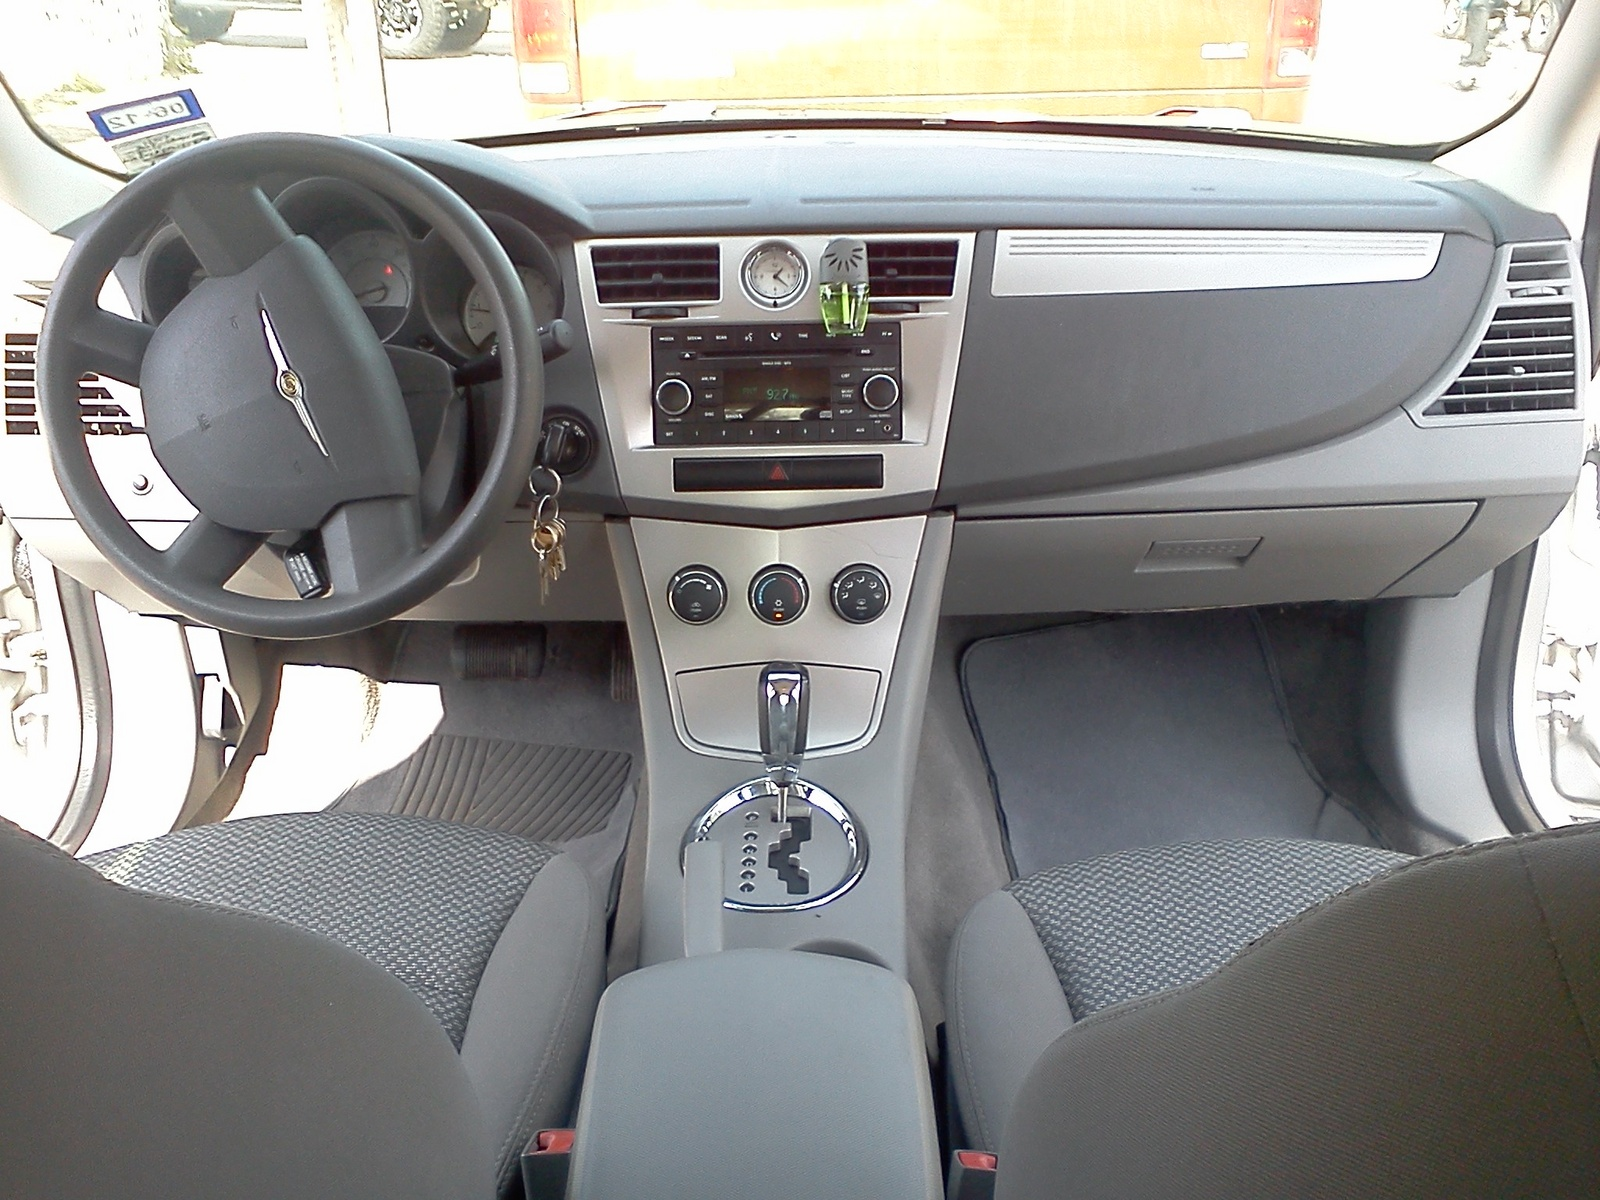 2008 Chrysler Sebring Interior Parts